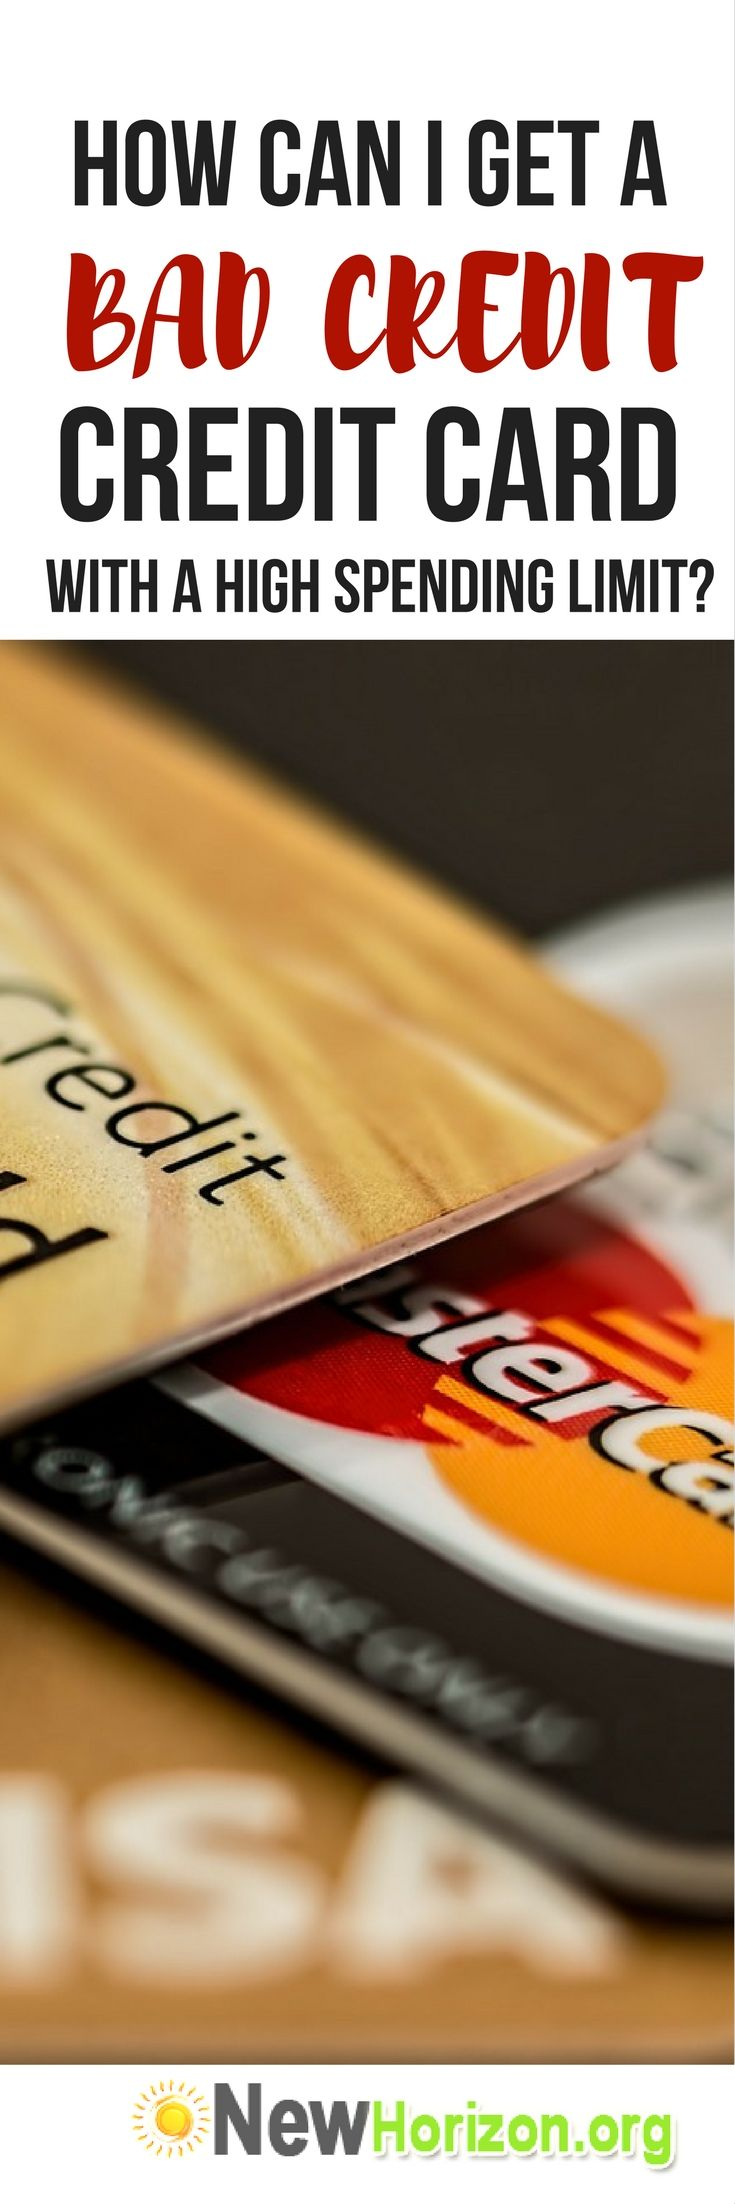 How Can I Get a Bad Credit Credit Card with a High